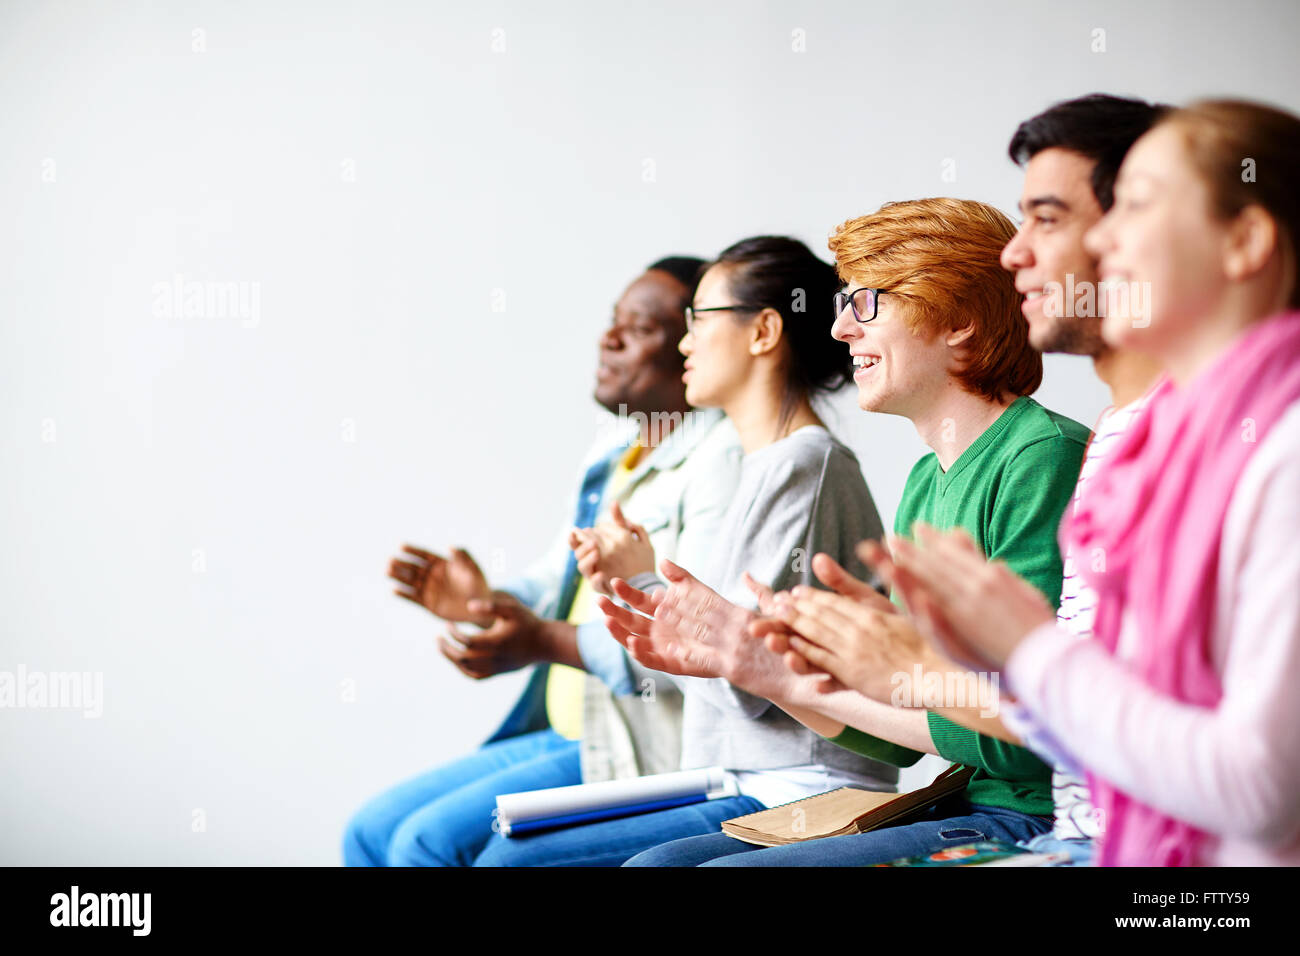 Students clapping hands Stock Photo